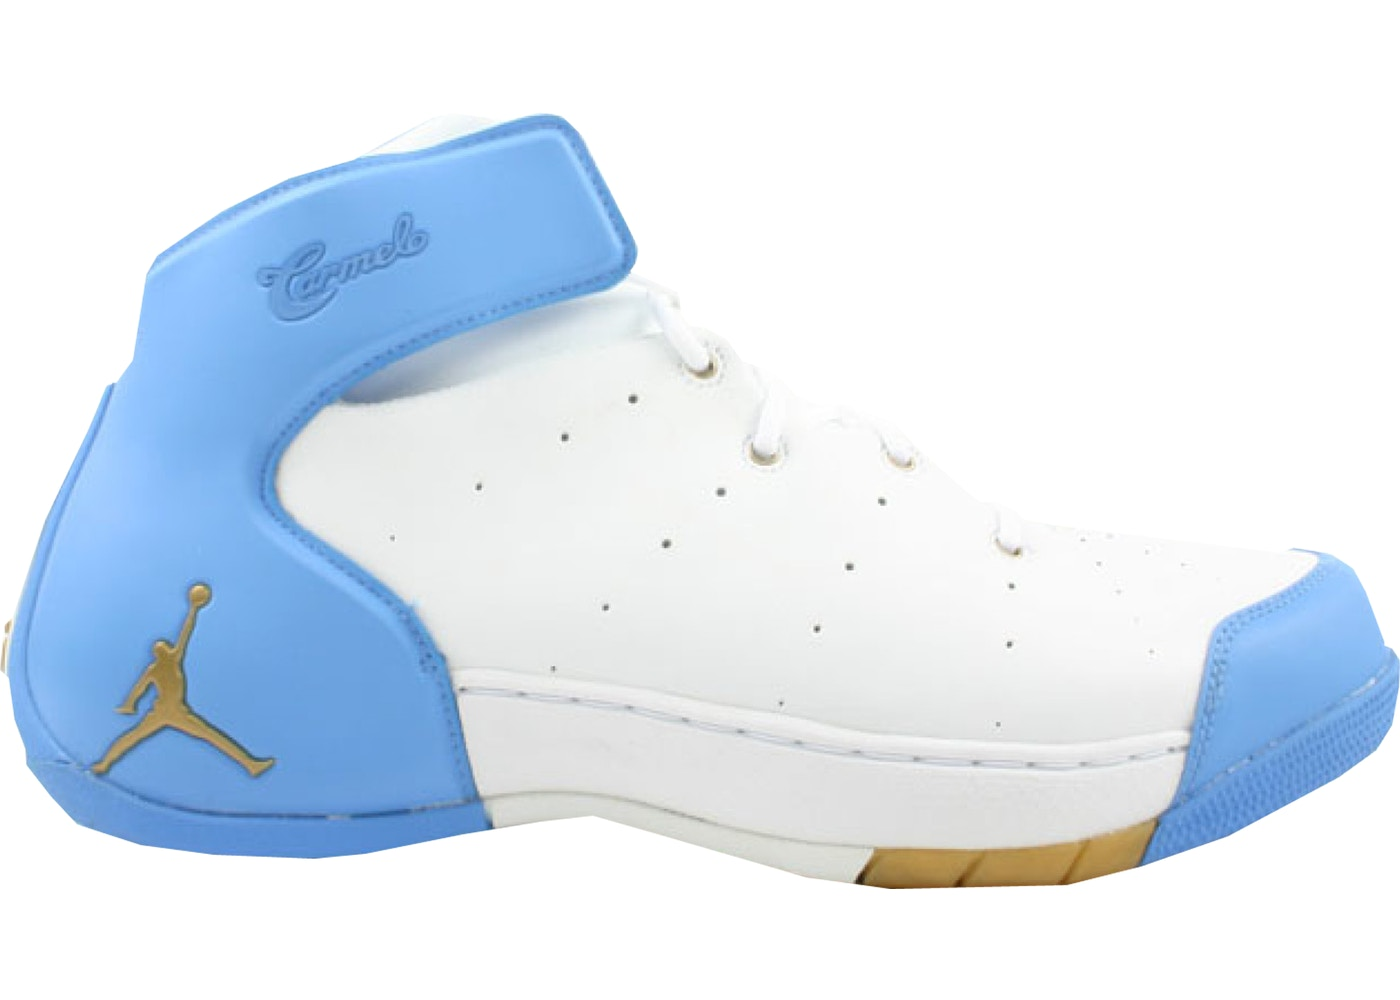 Jordan Melo 1.5 White University Blue OG - 309265-171 4727441a9